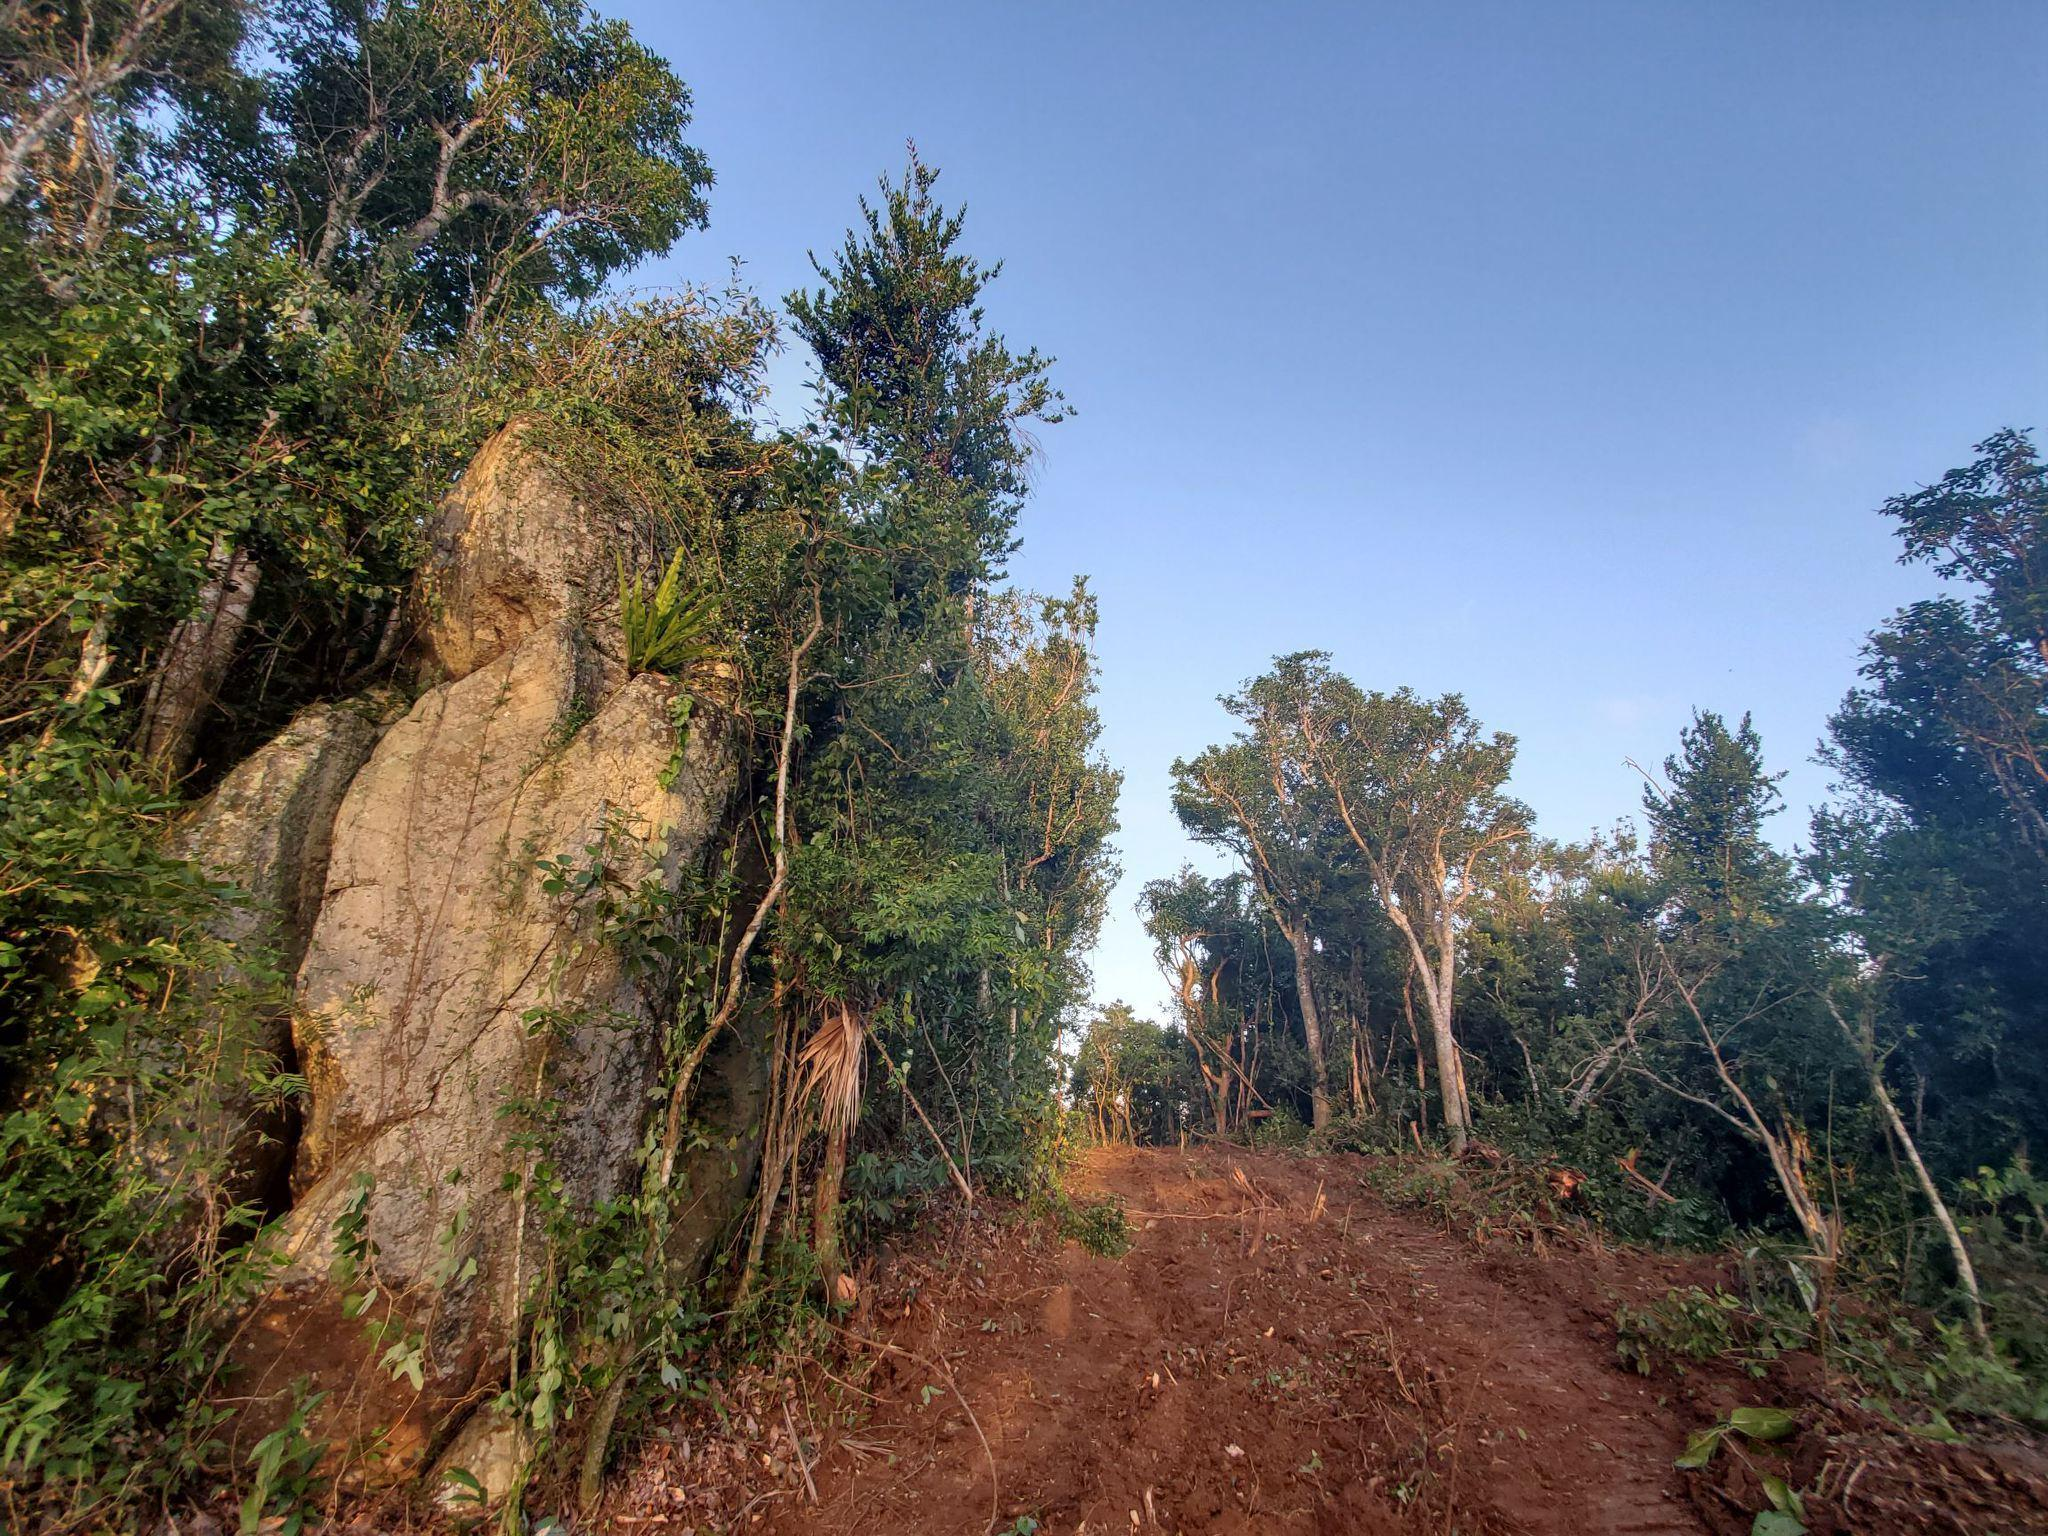 Stone outcroppings along the path